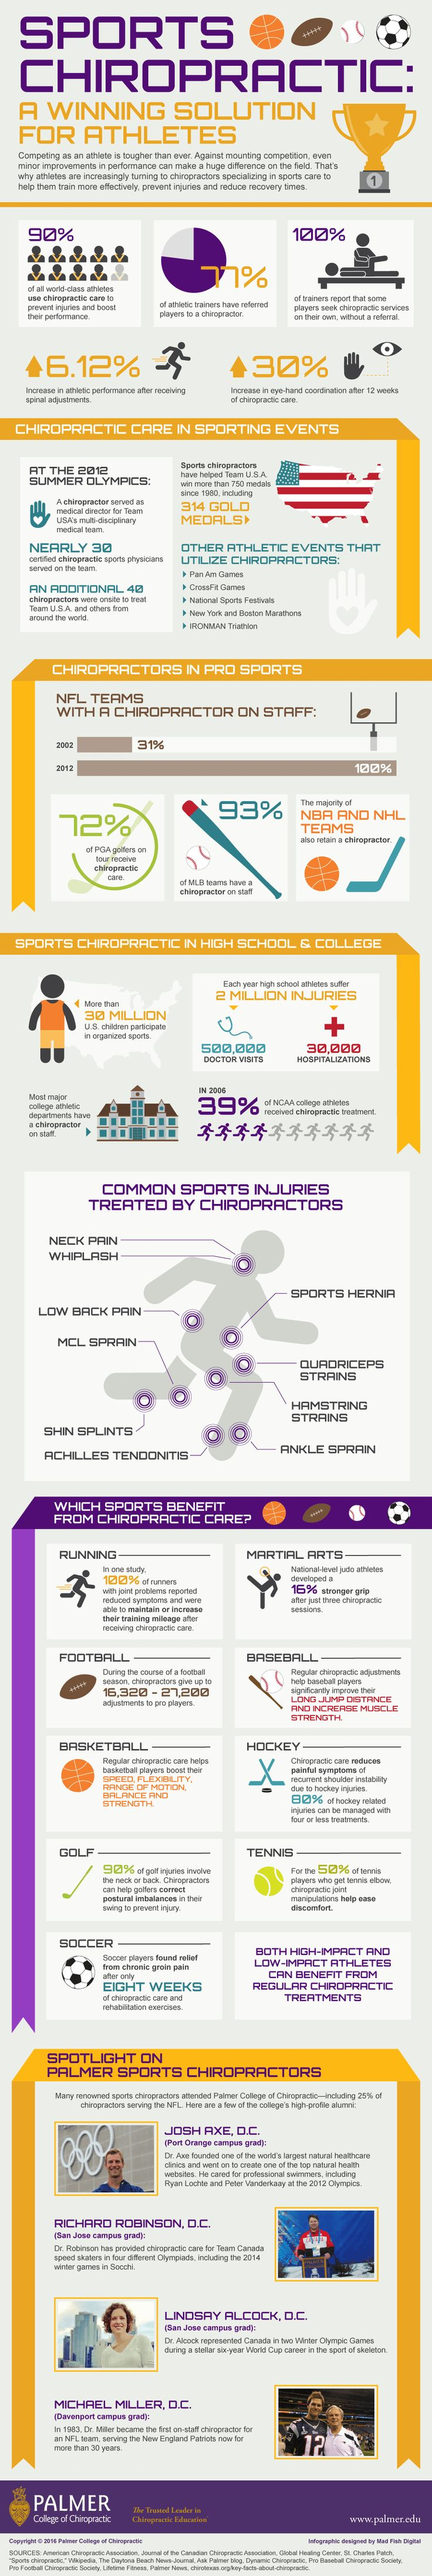 Sports Chiropractic -  A Winning Solution For Athletes